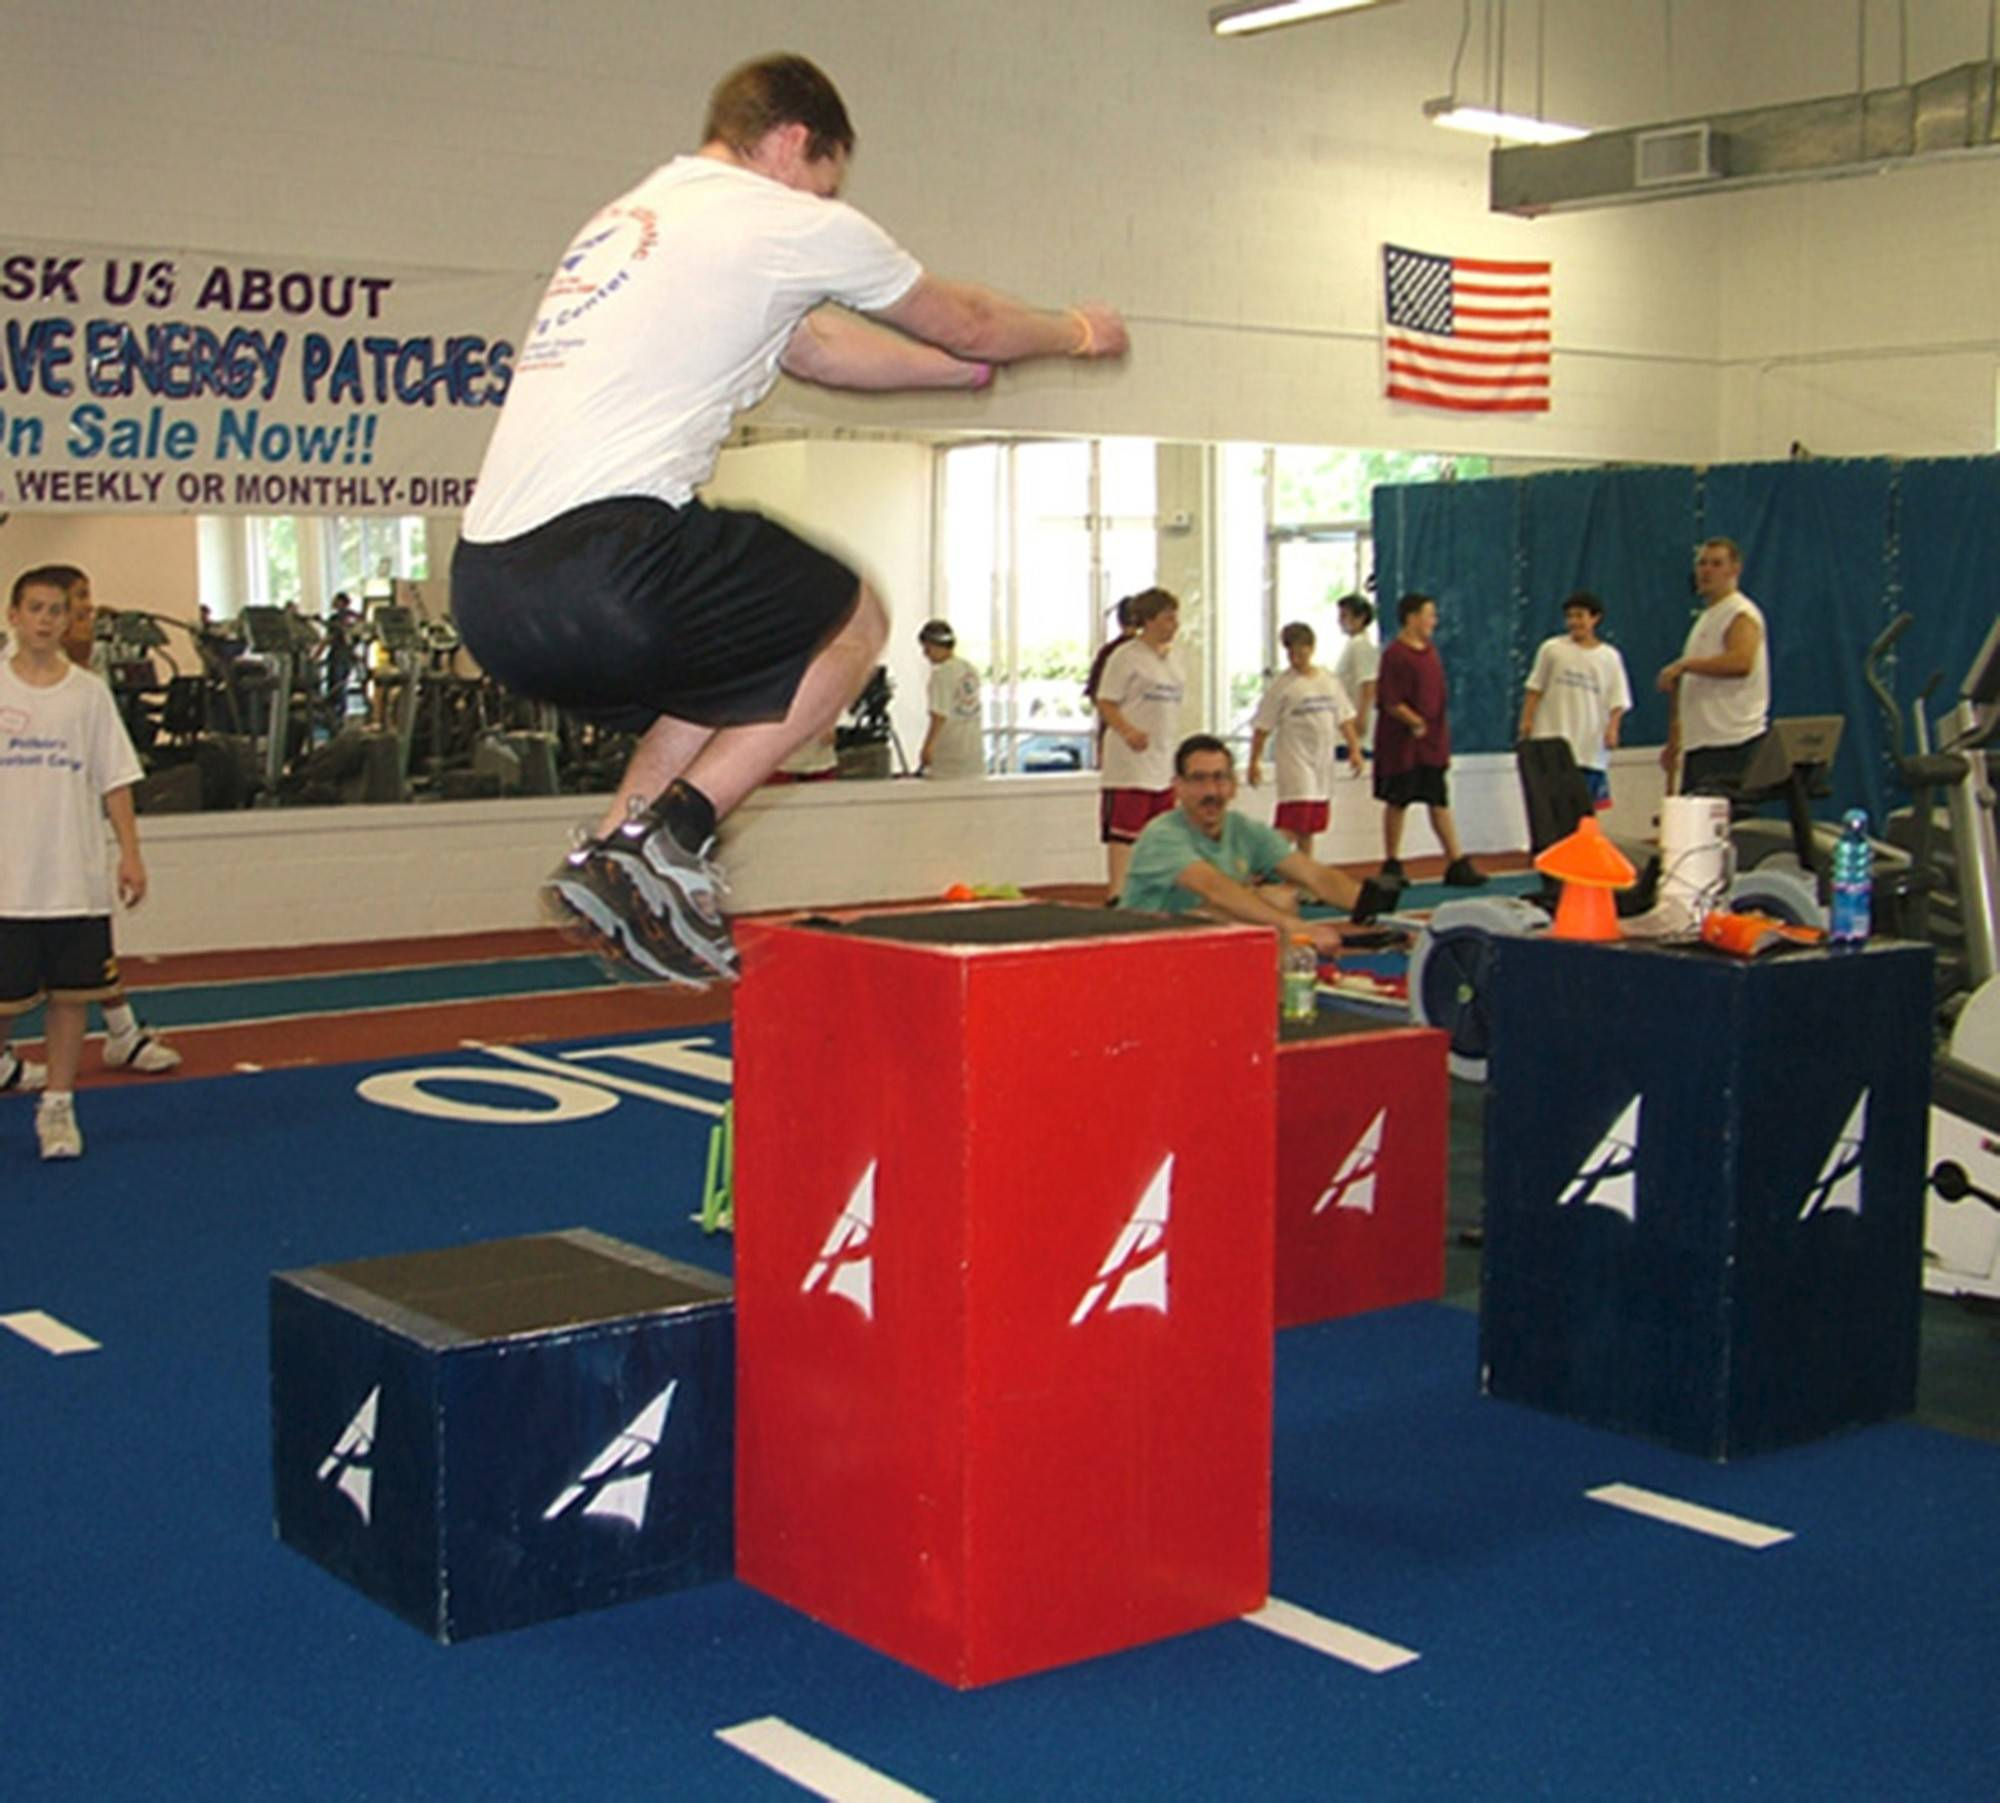 TJ Burns practicing box jumps; hurdles, box jumps and other plyometric exercises are standard for bobsled training.